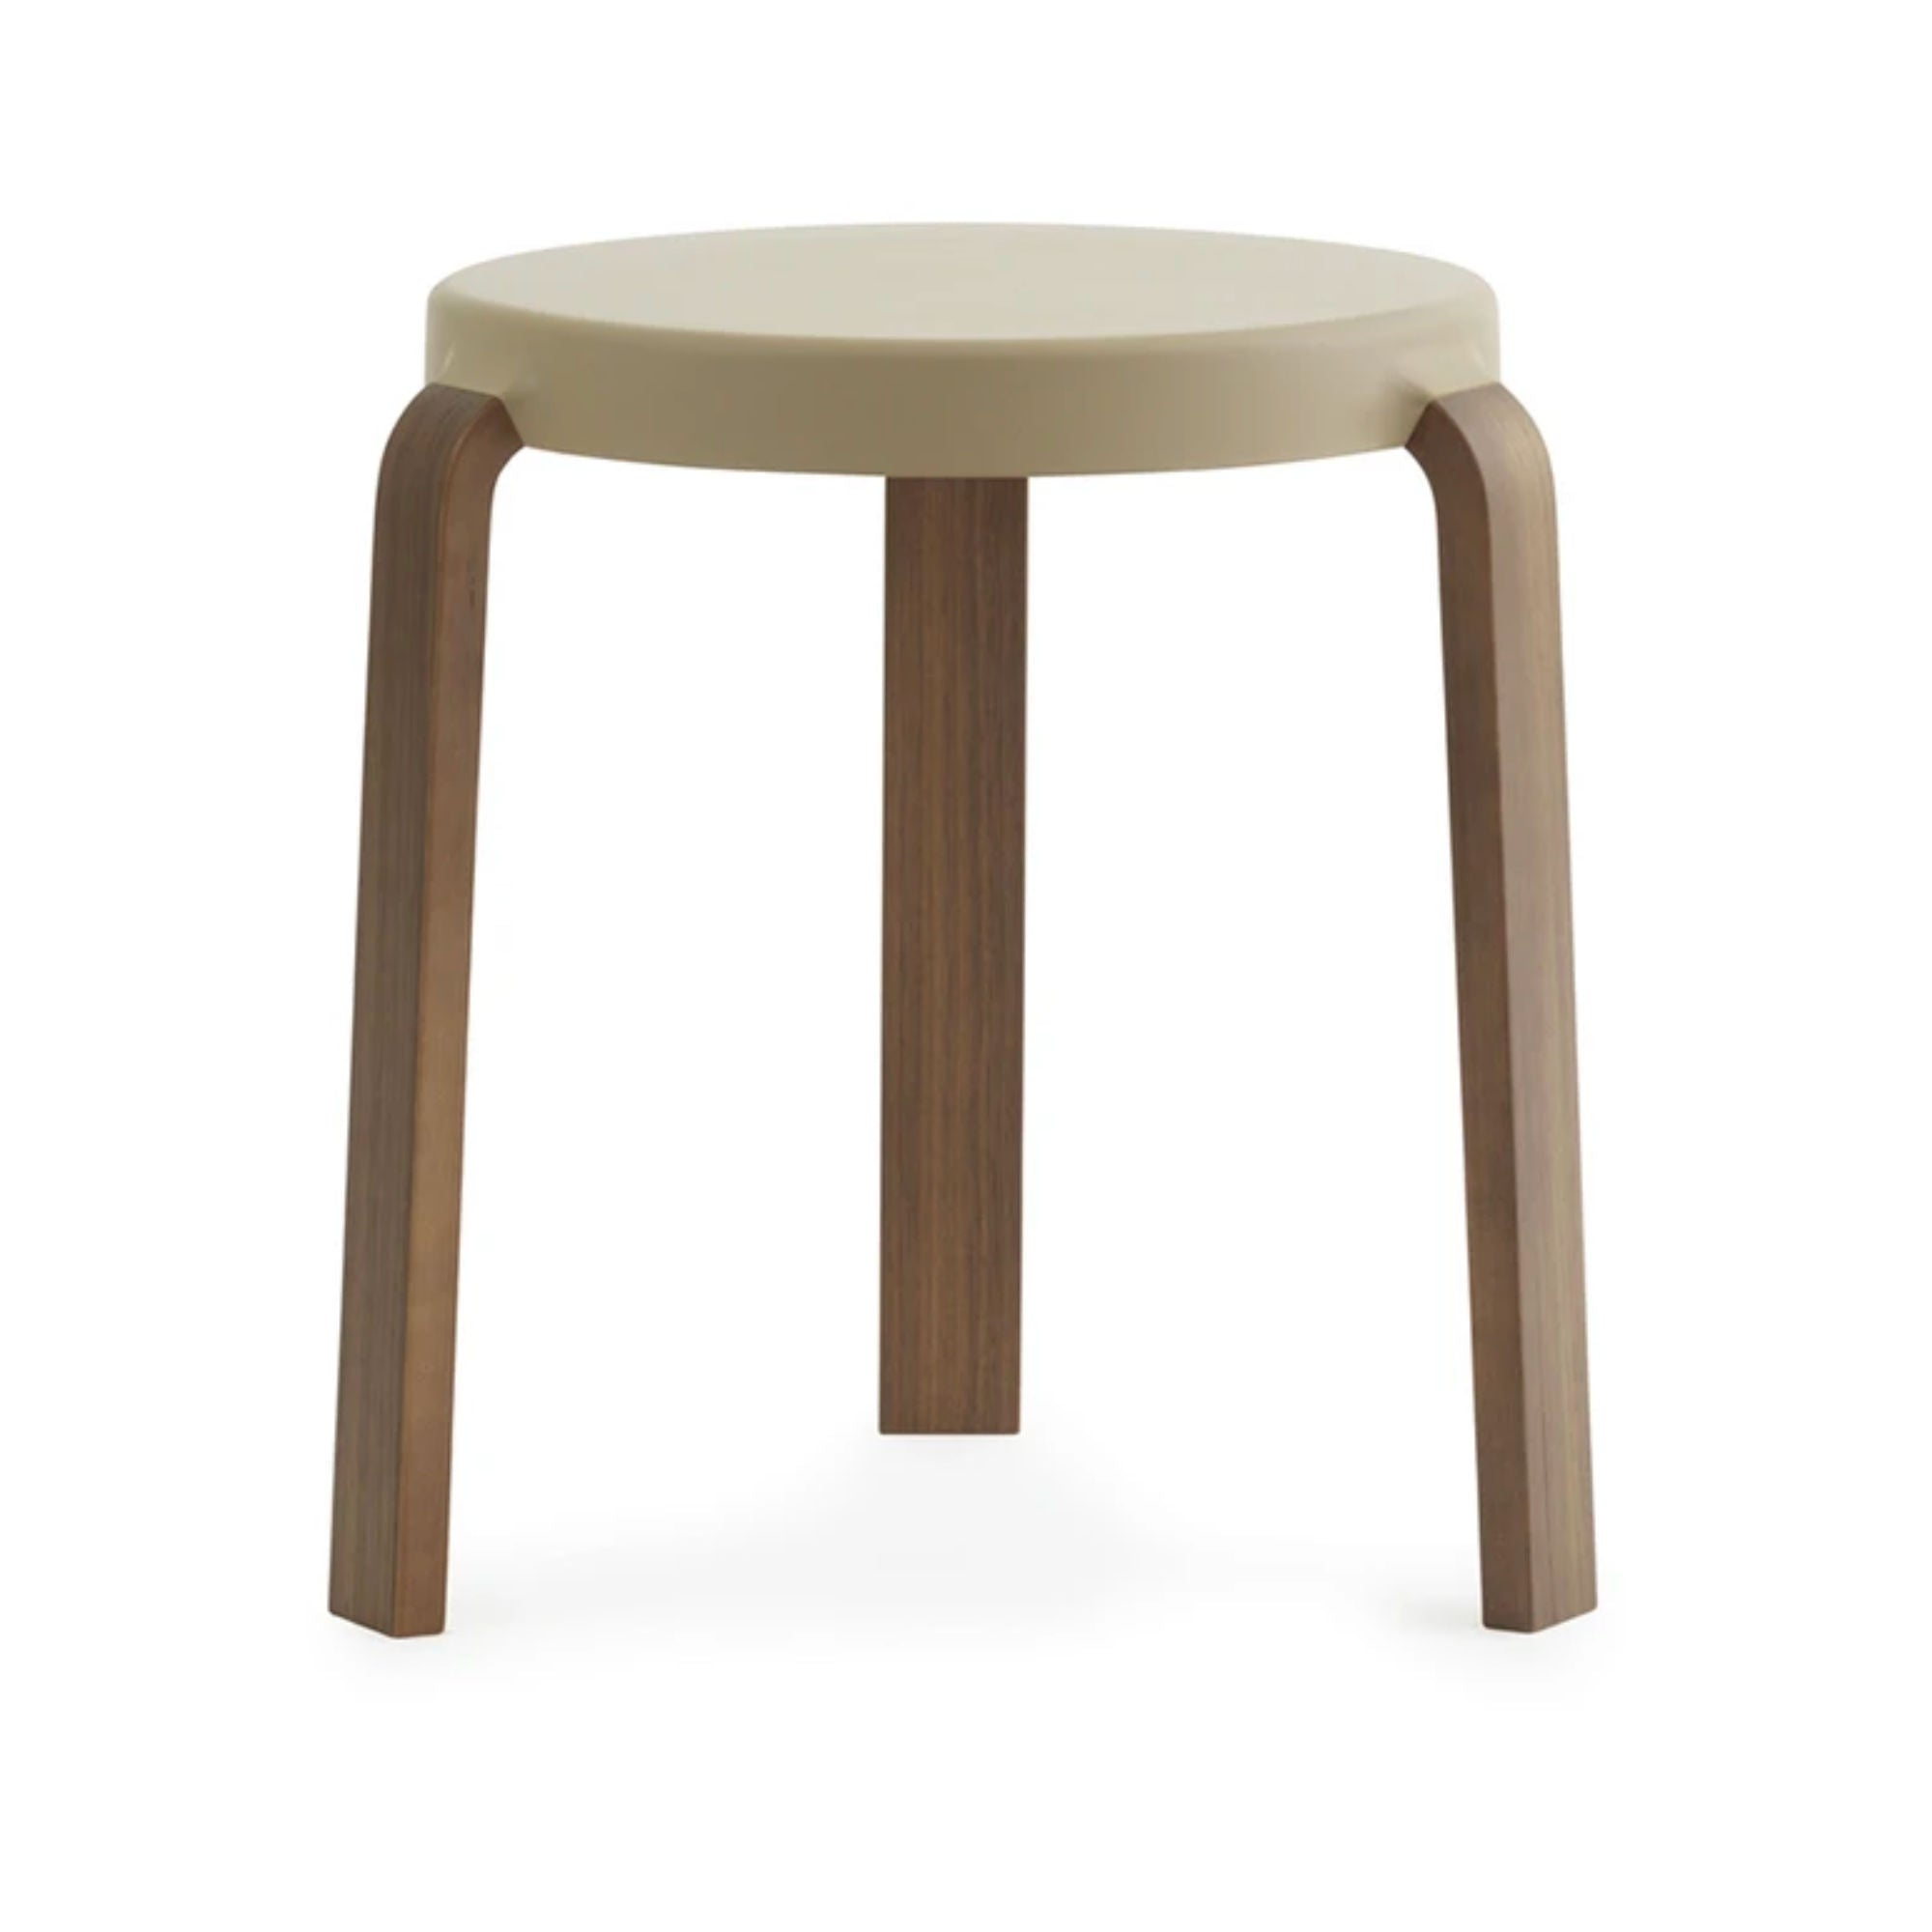 Normann Copenhagen Tap Stool , Sand - Walnut